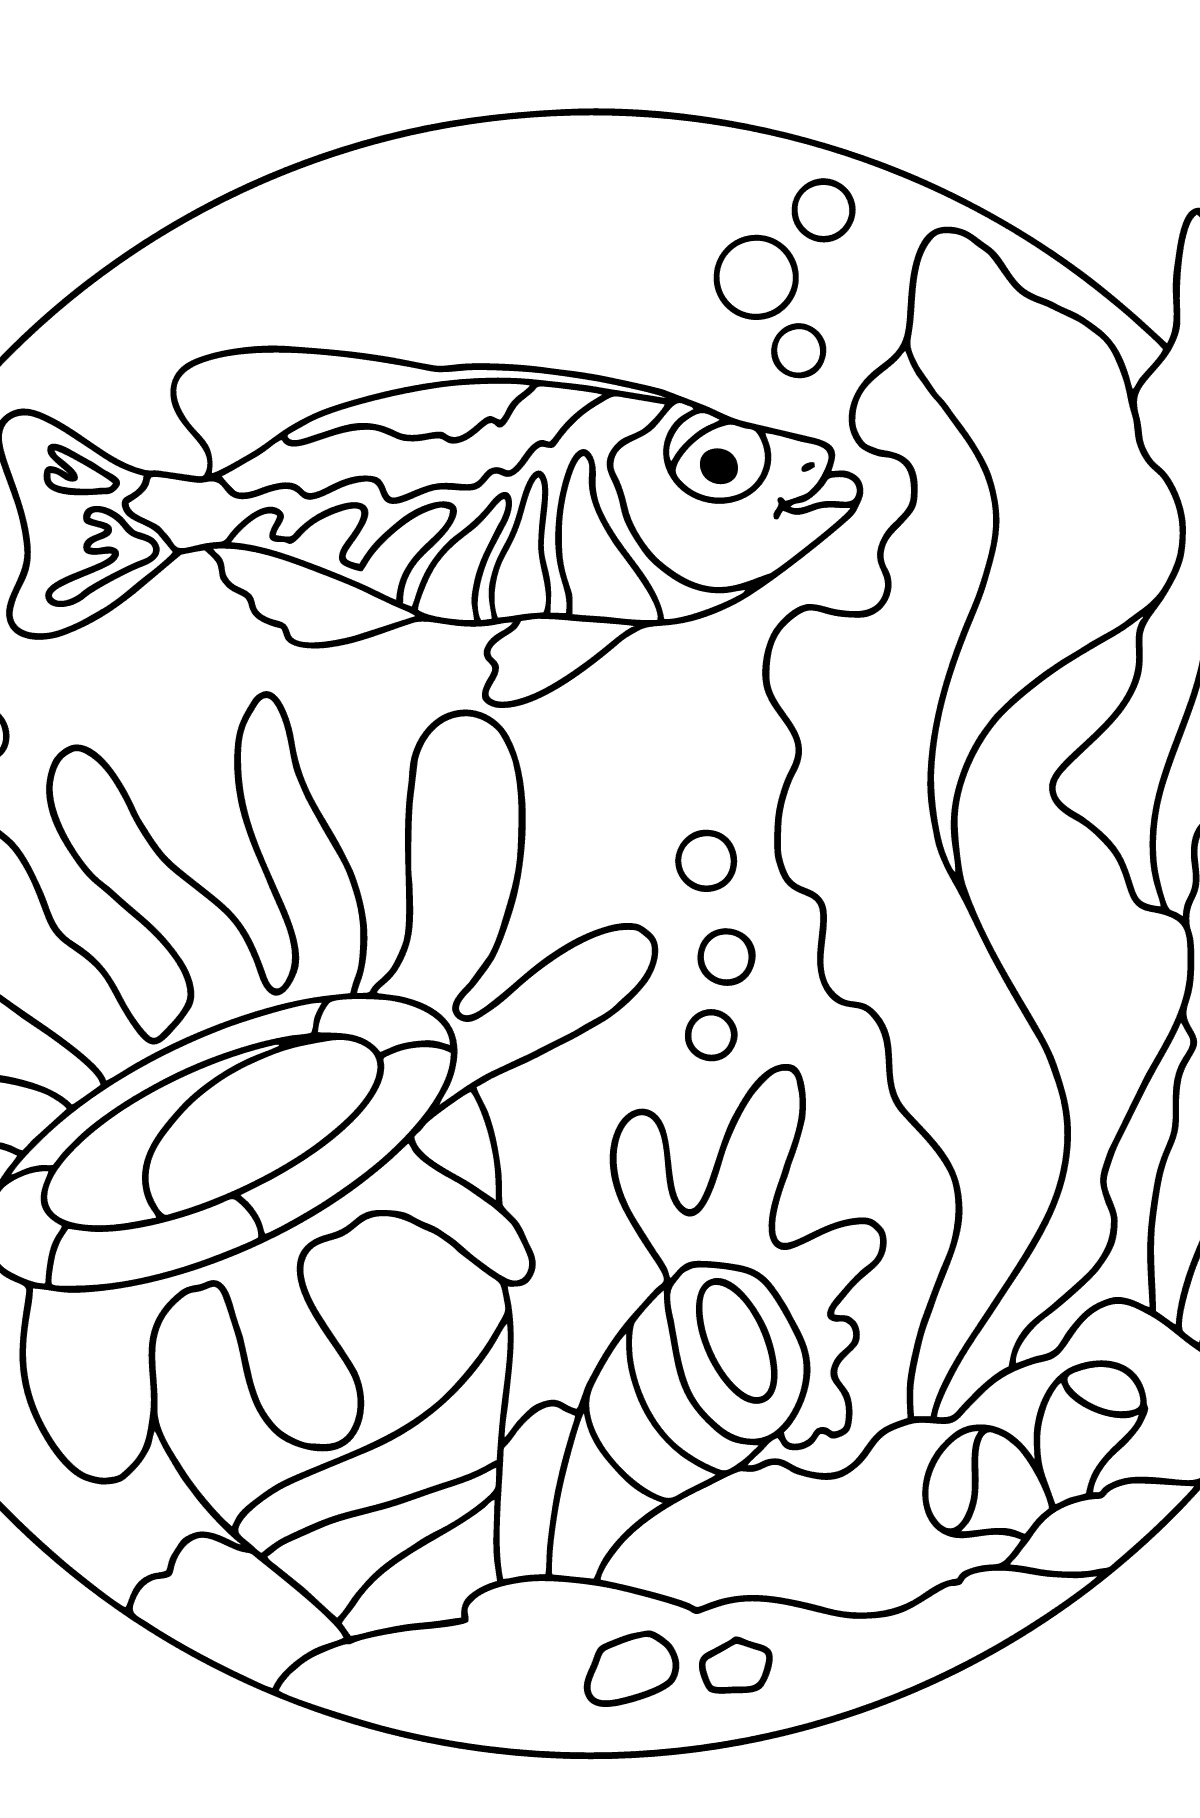 Coloring Page - A Fish is Admiring the Corals - Coloring Pages for Children